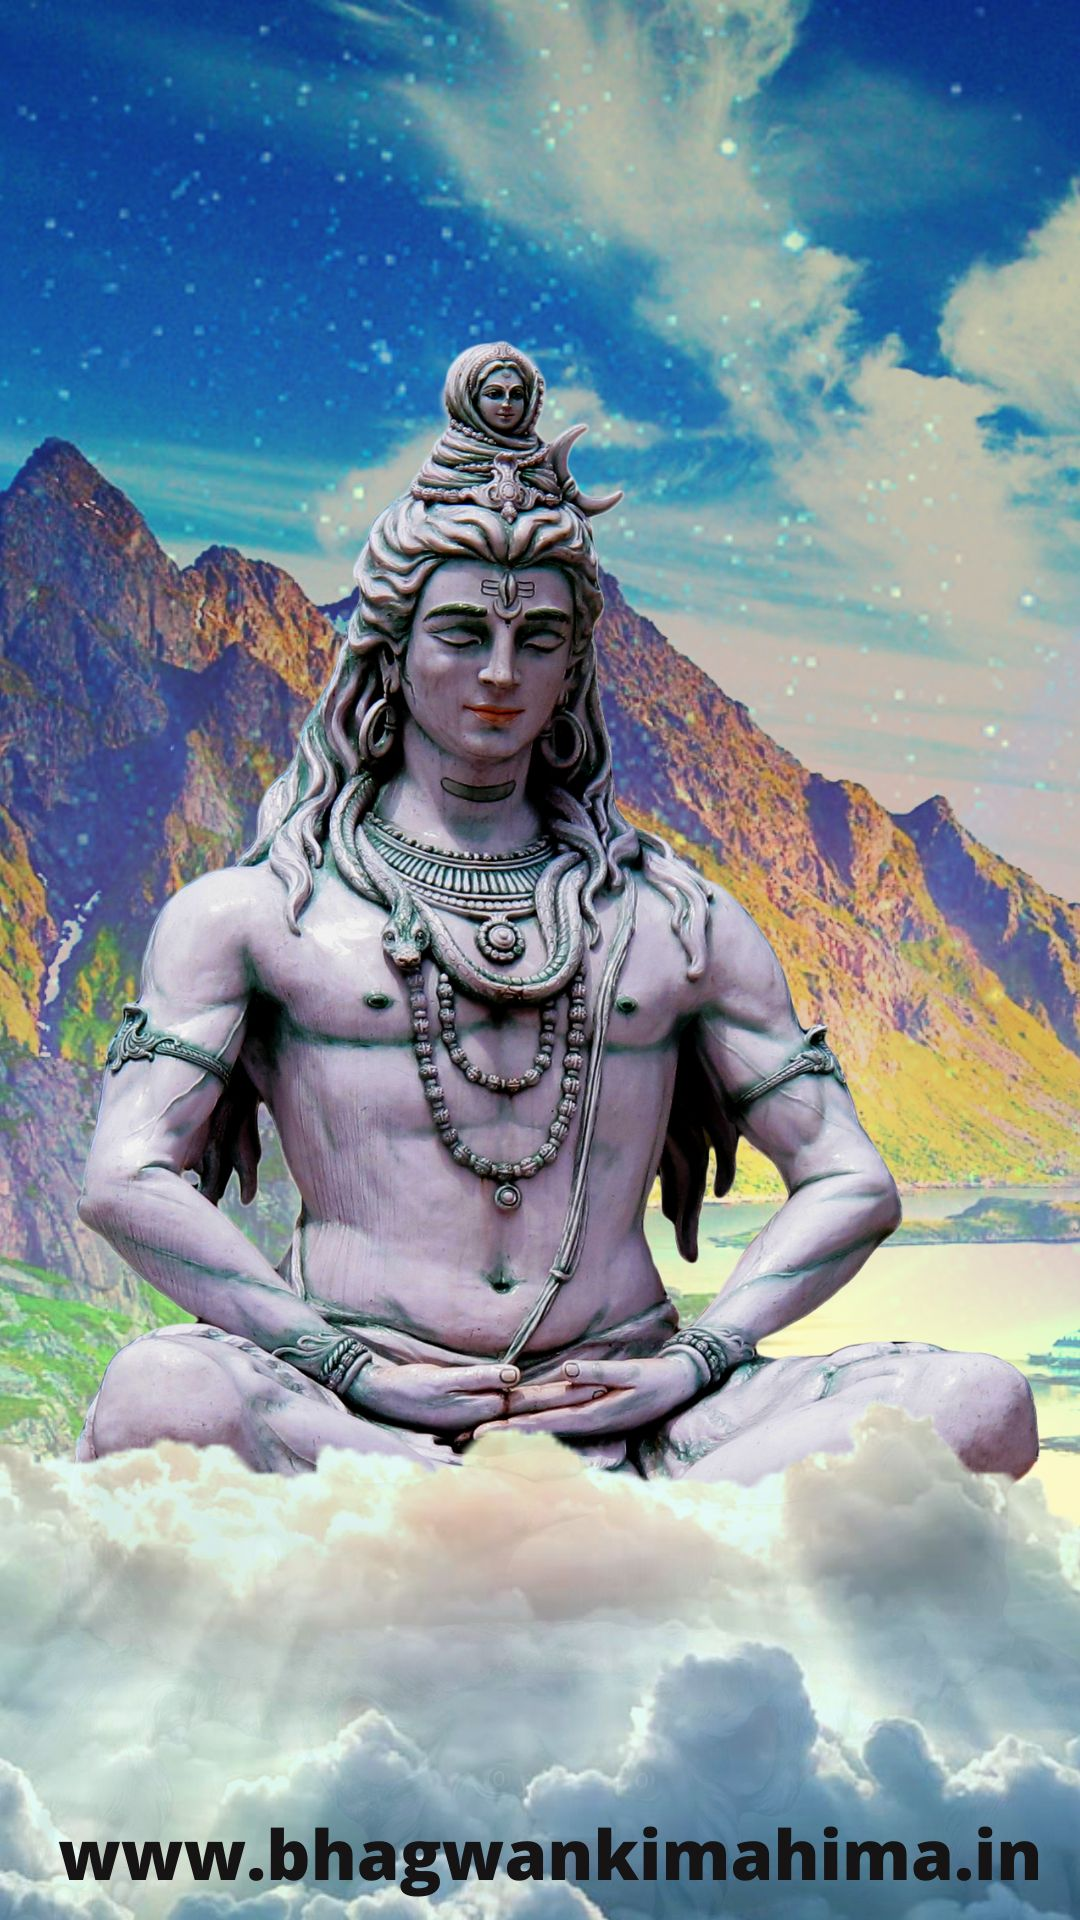 Lord Shiva Hd Wallpapers Download Lord Shiva Hd Wallpaper Lord Shiva Shiva Hd wallpaper of lord shiva for android